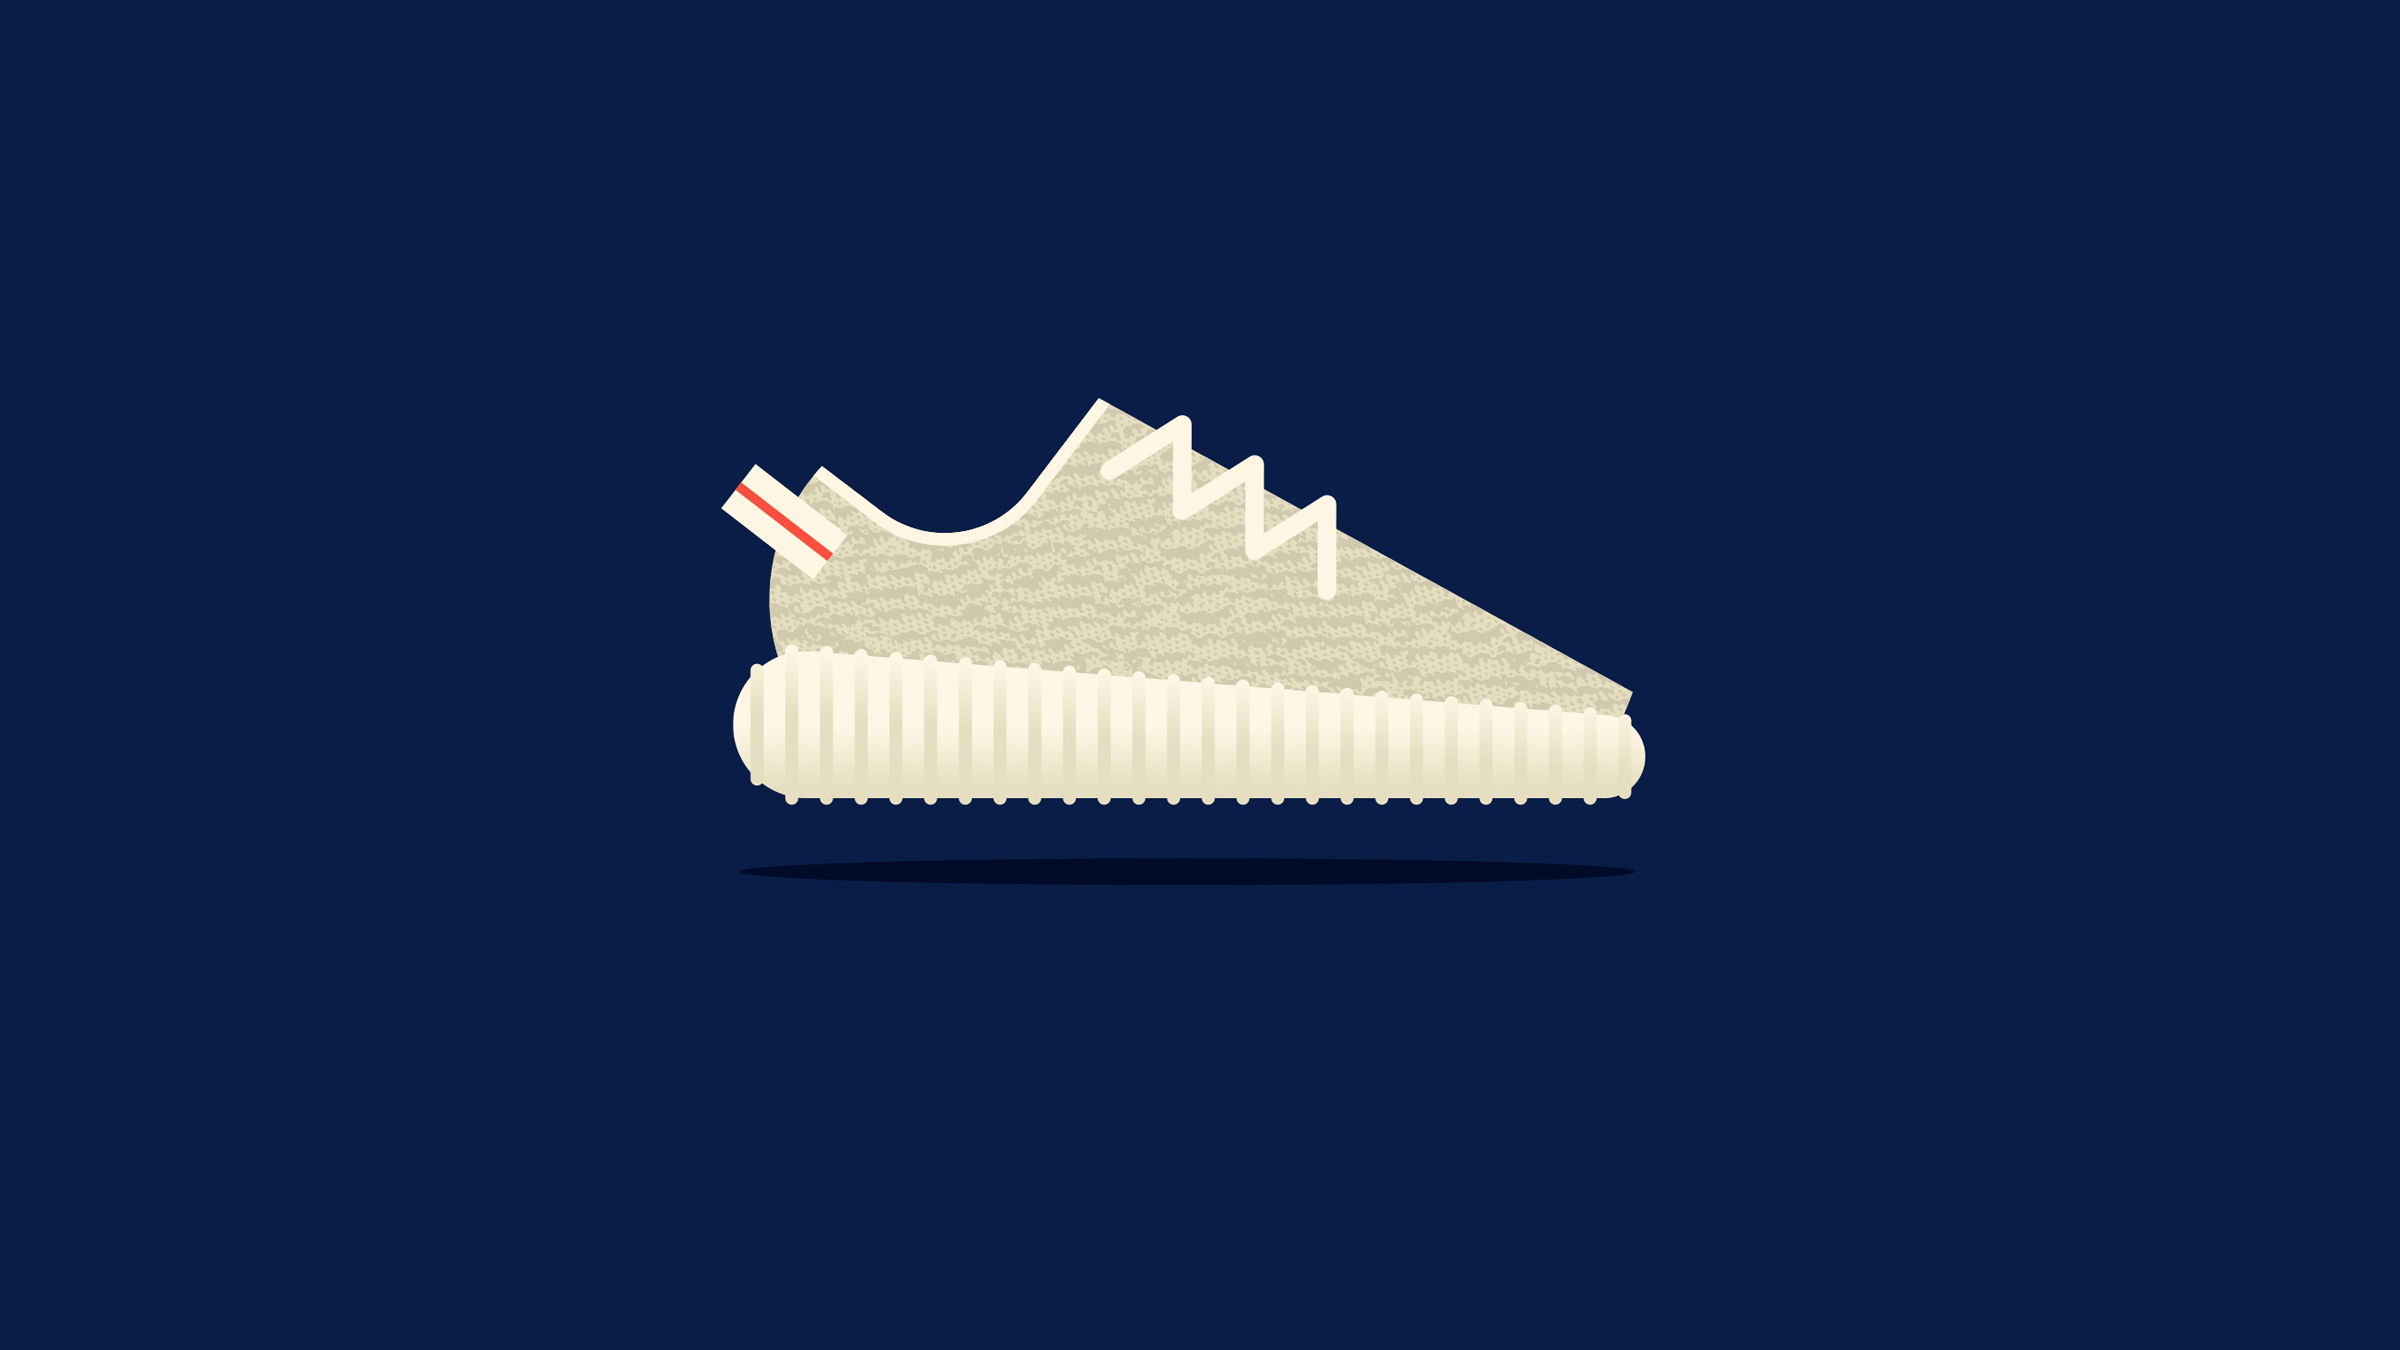 Adidas Yeezy Boost Illustration